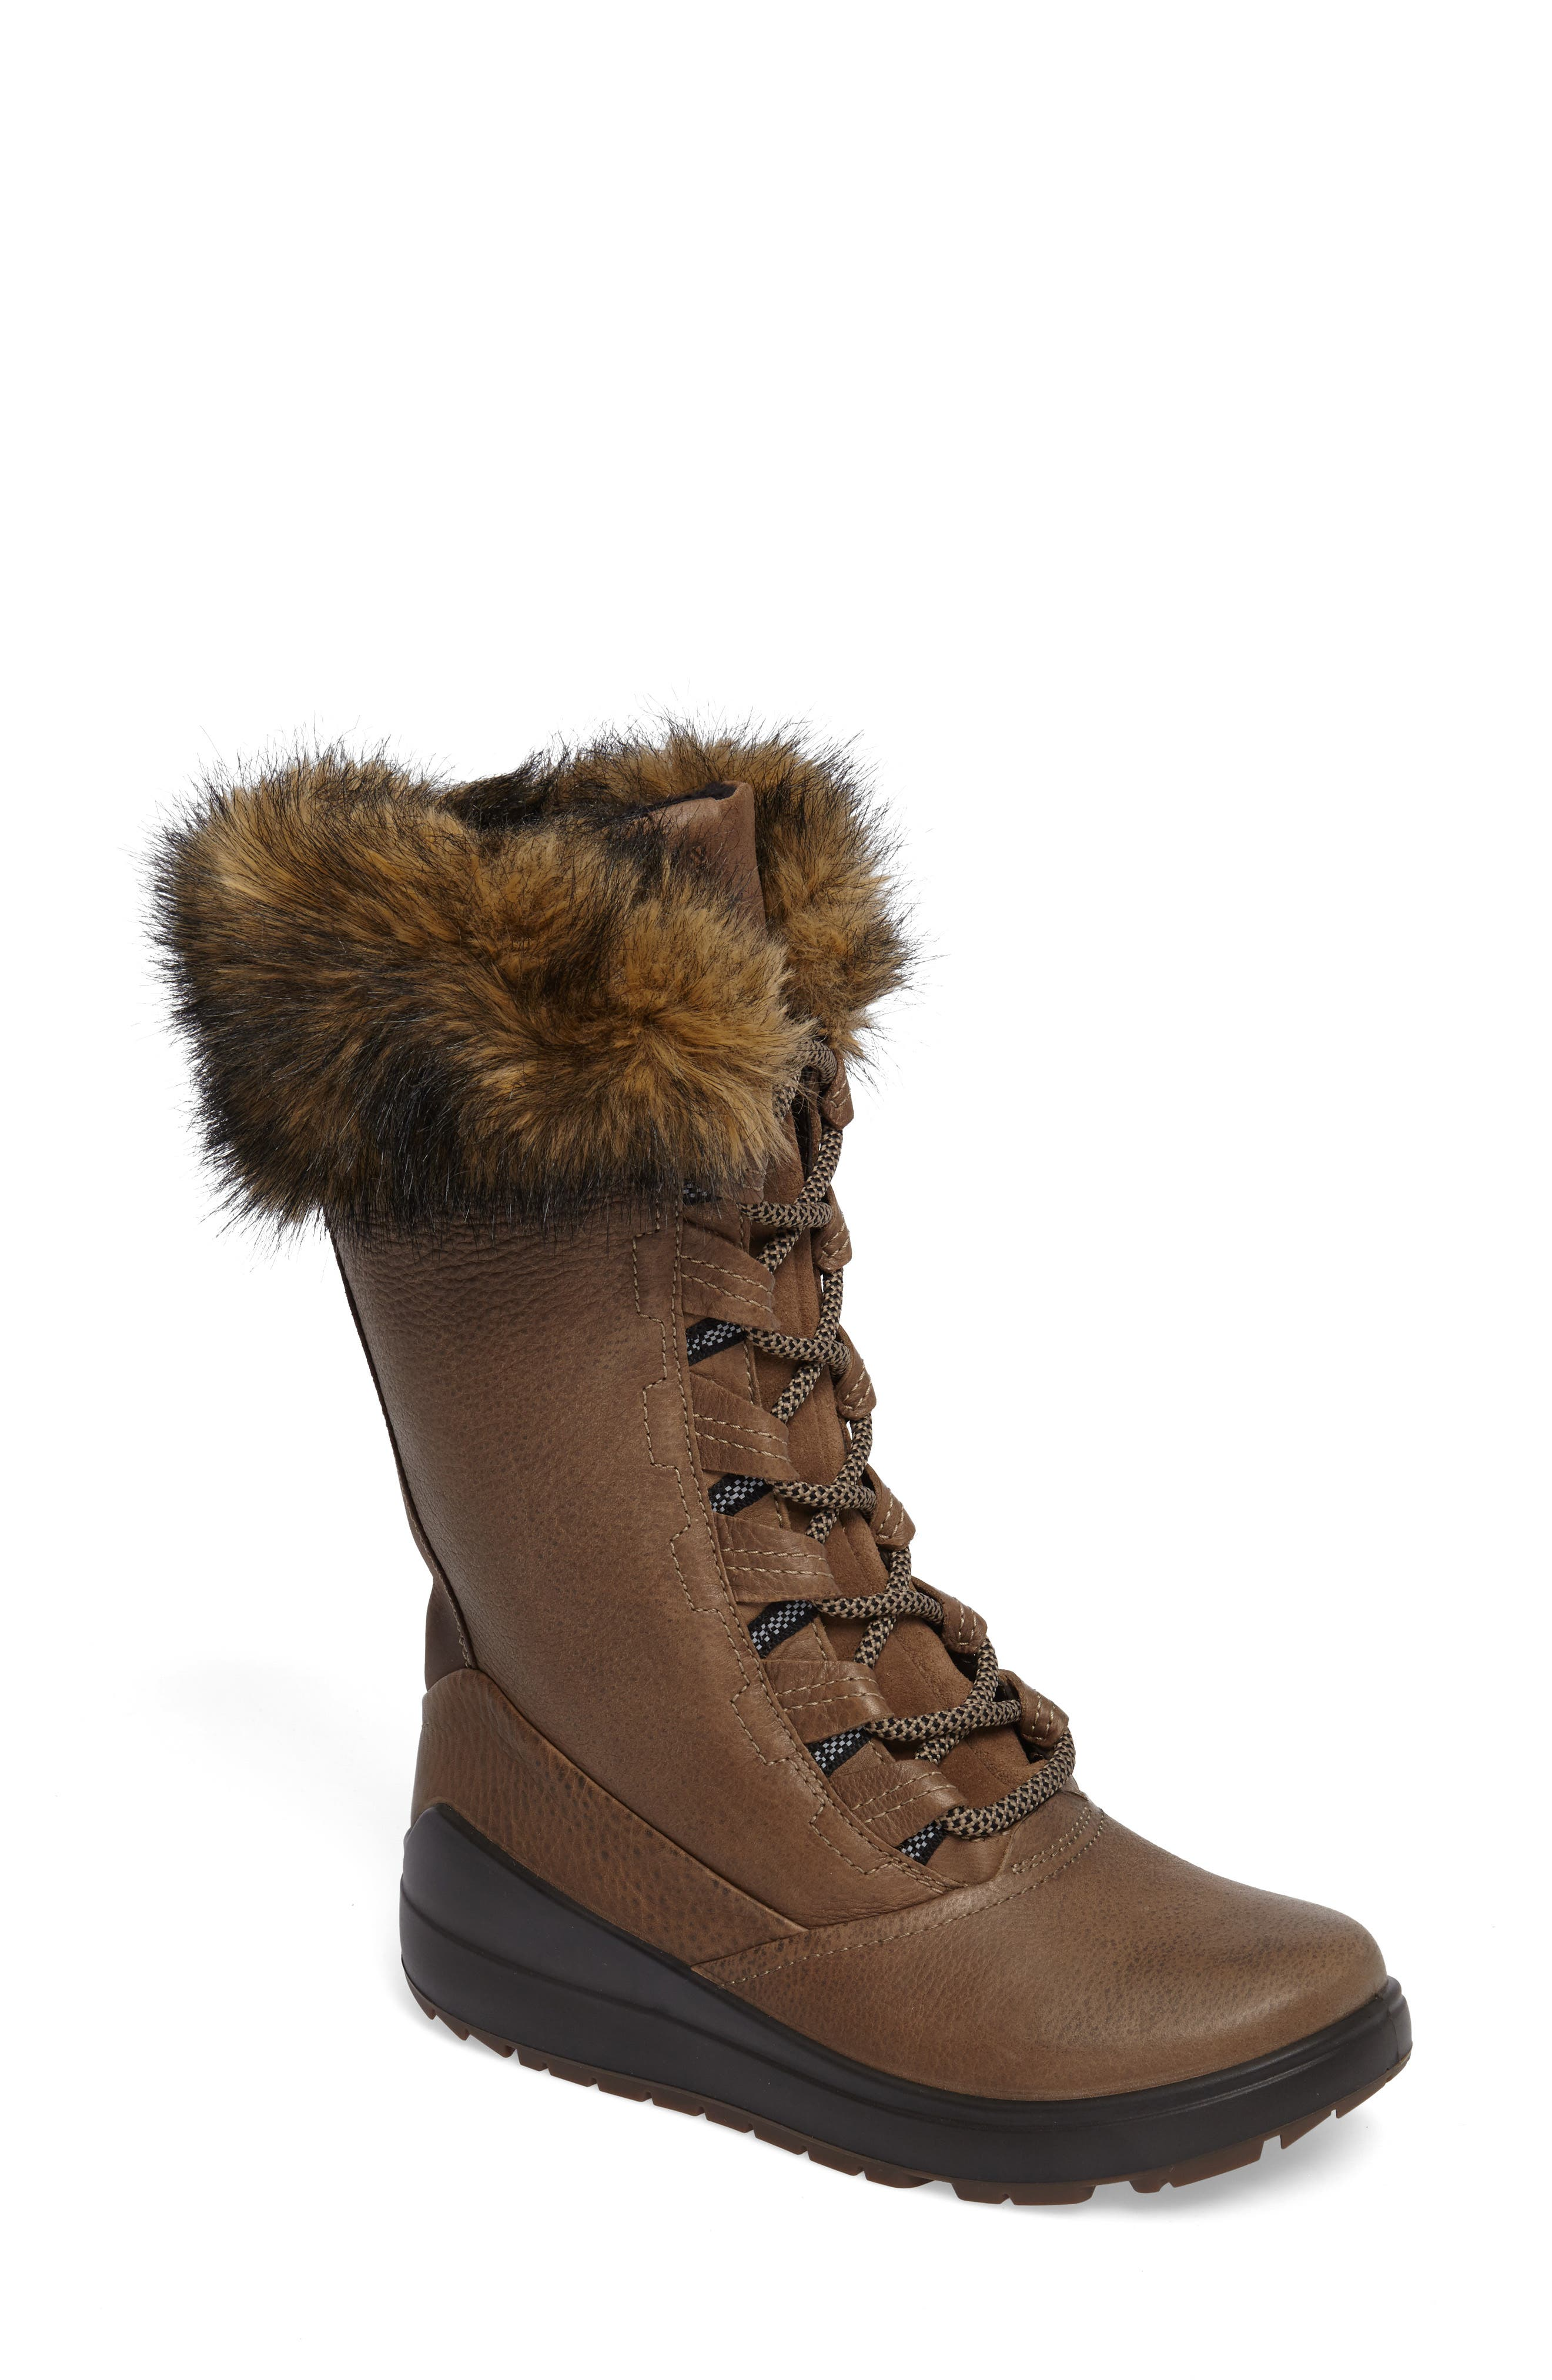 ECCO Noyce Siberia Hydromax Water Resistant Winter Boot with Faux Fur Trim (Women)